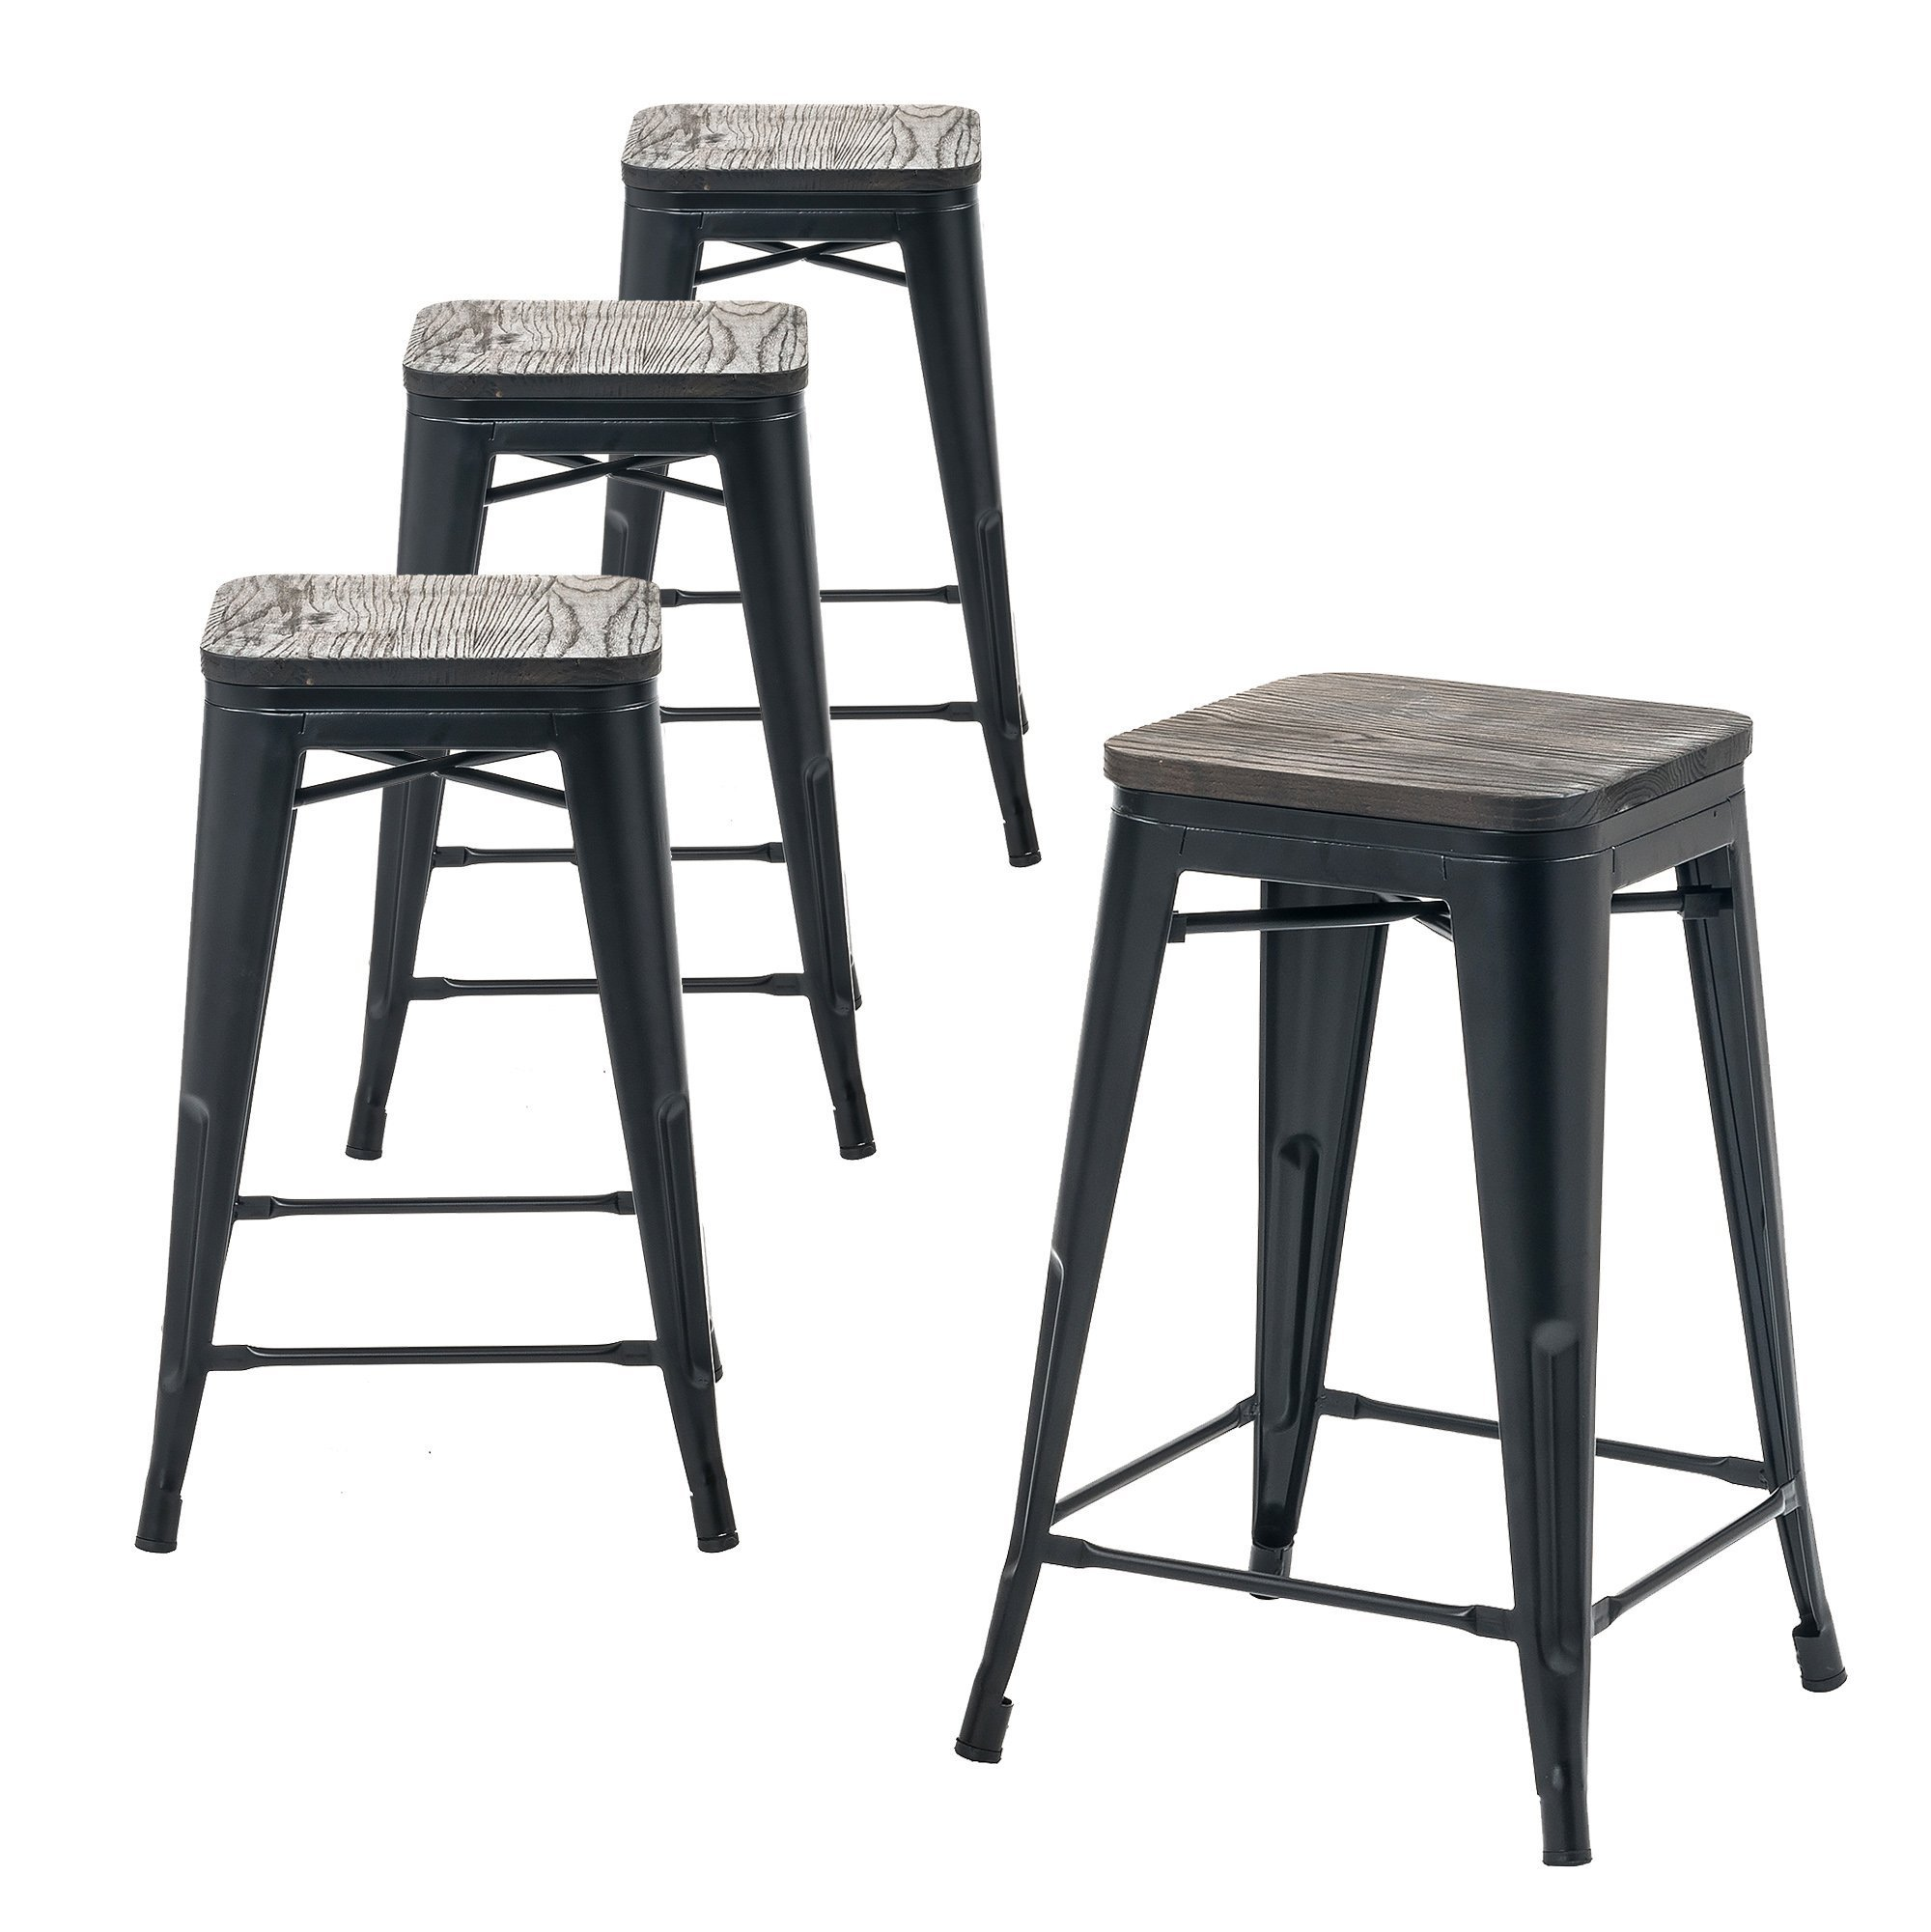 Best Rated In Patio Stools Amp Bar Chairs Amp Helpful Customer